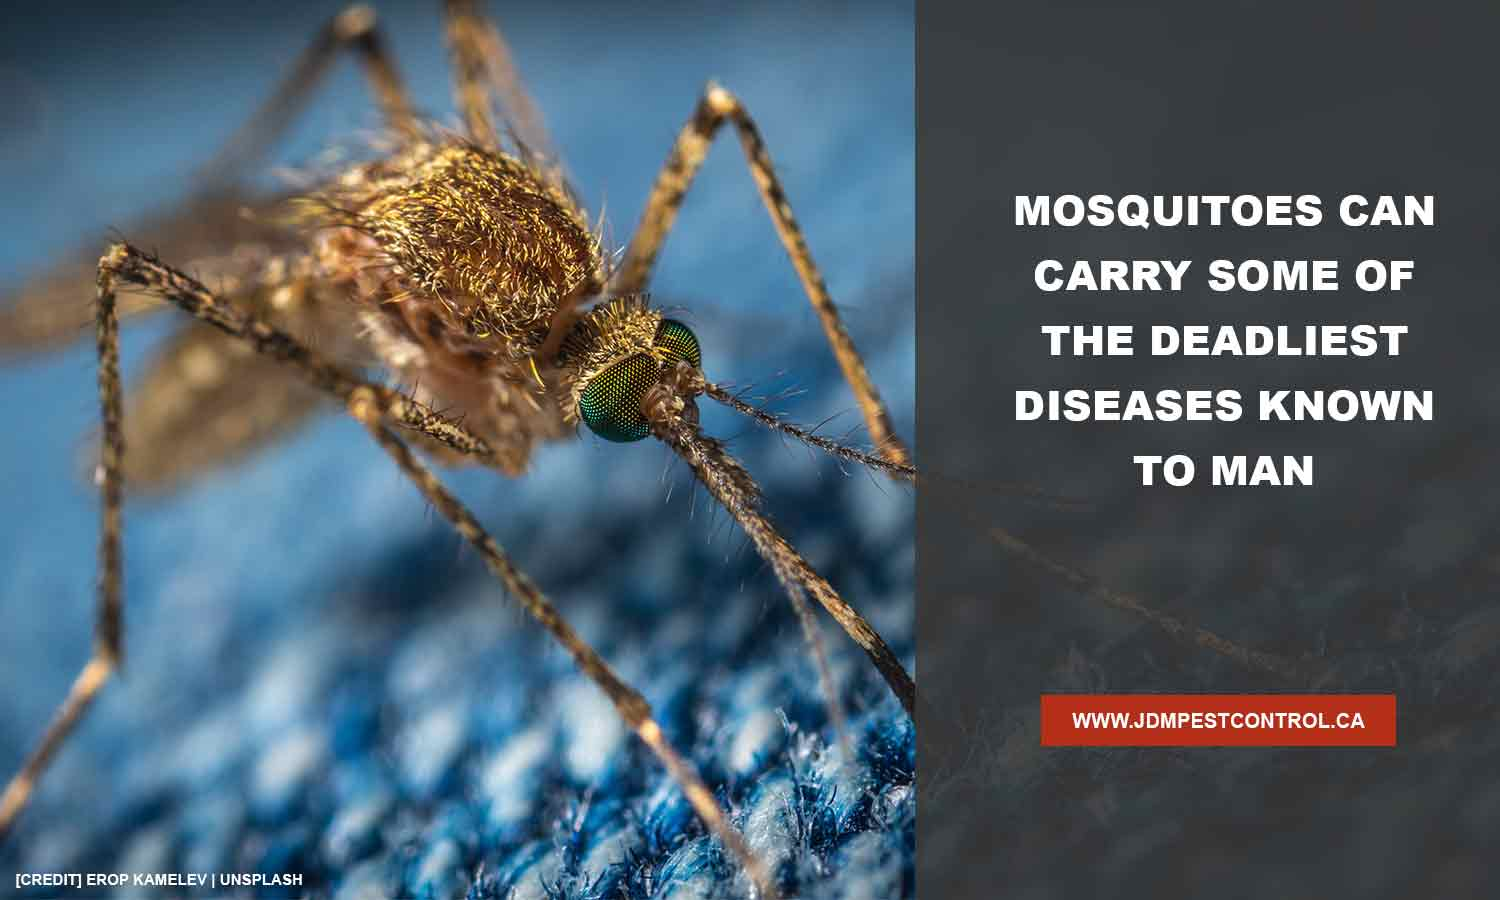 Mosquitoes can carry some of the deadliest diseases known to man